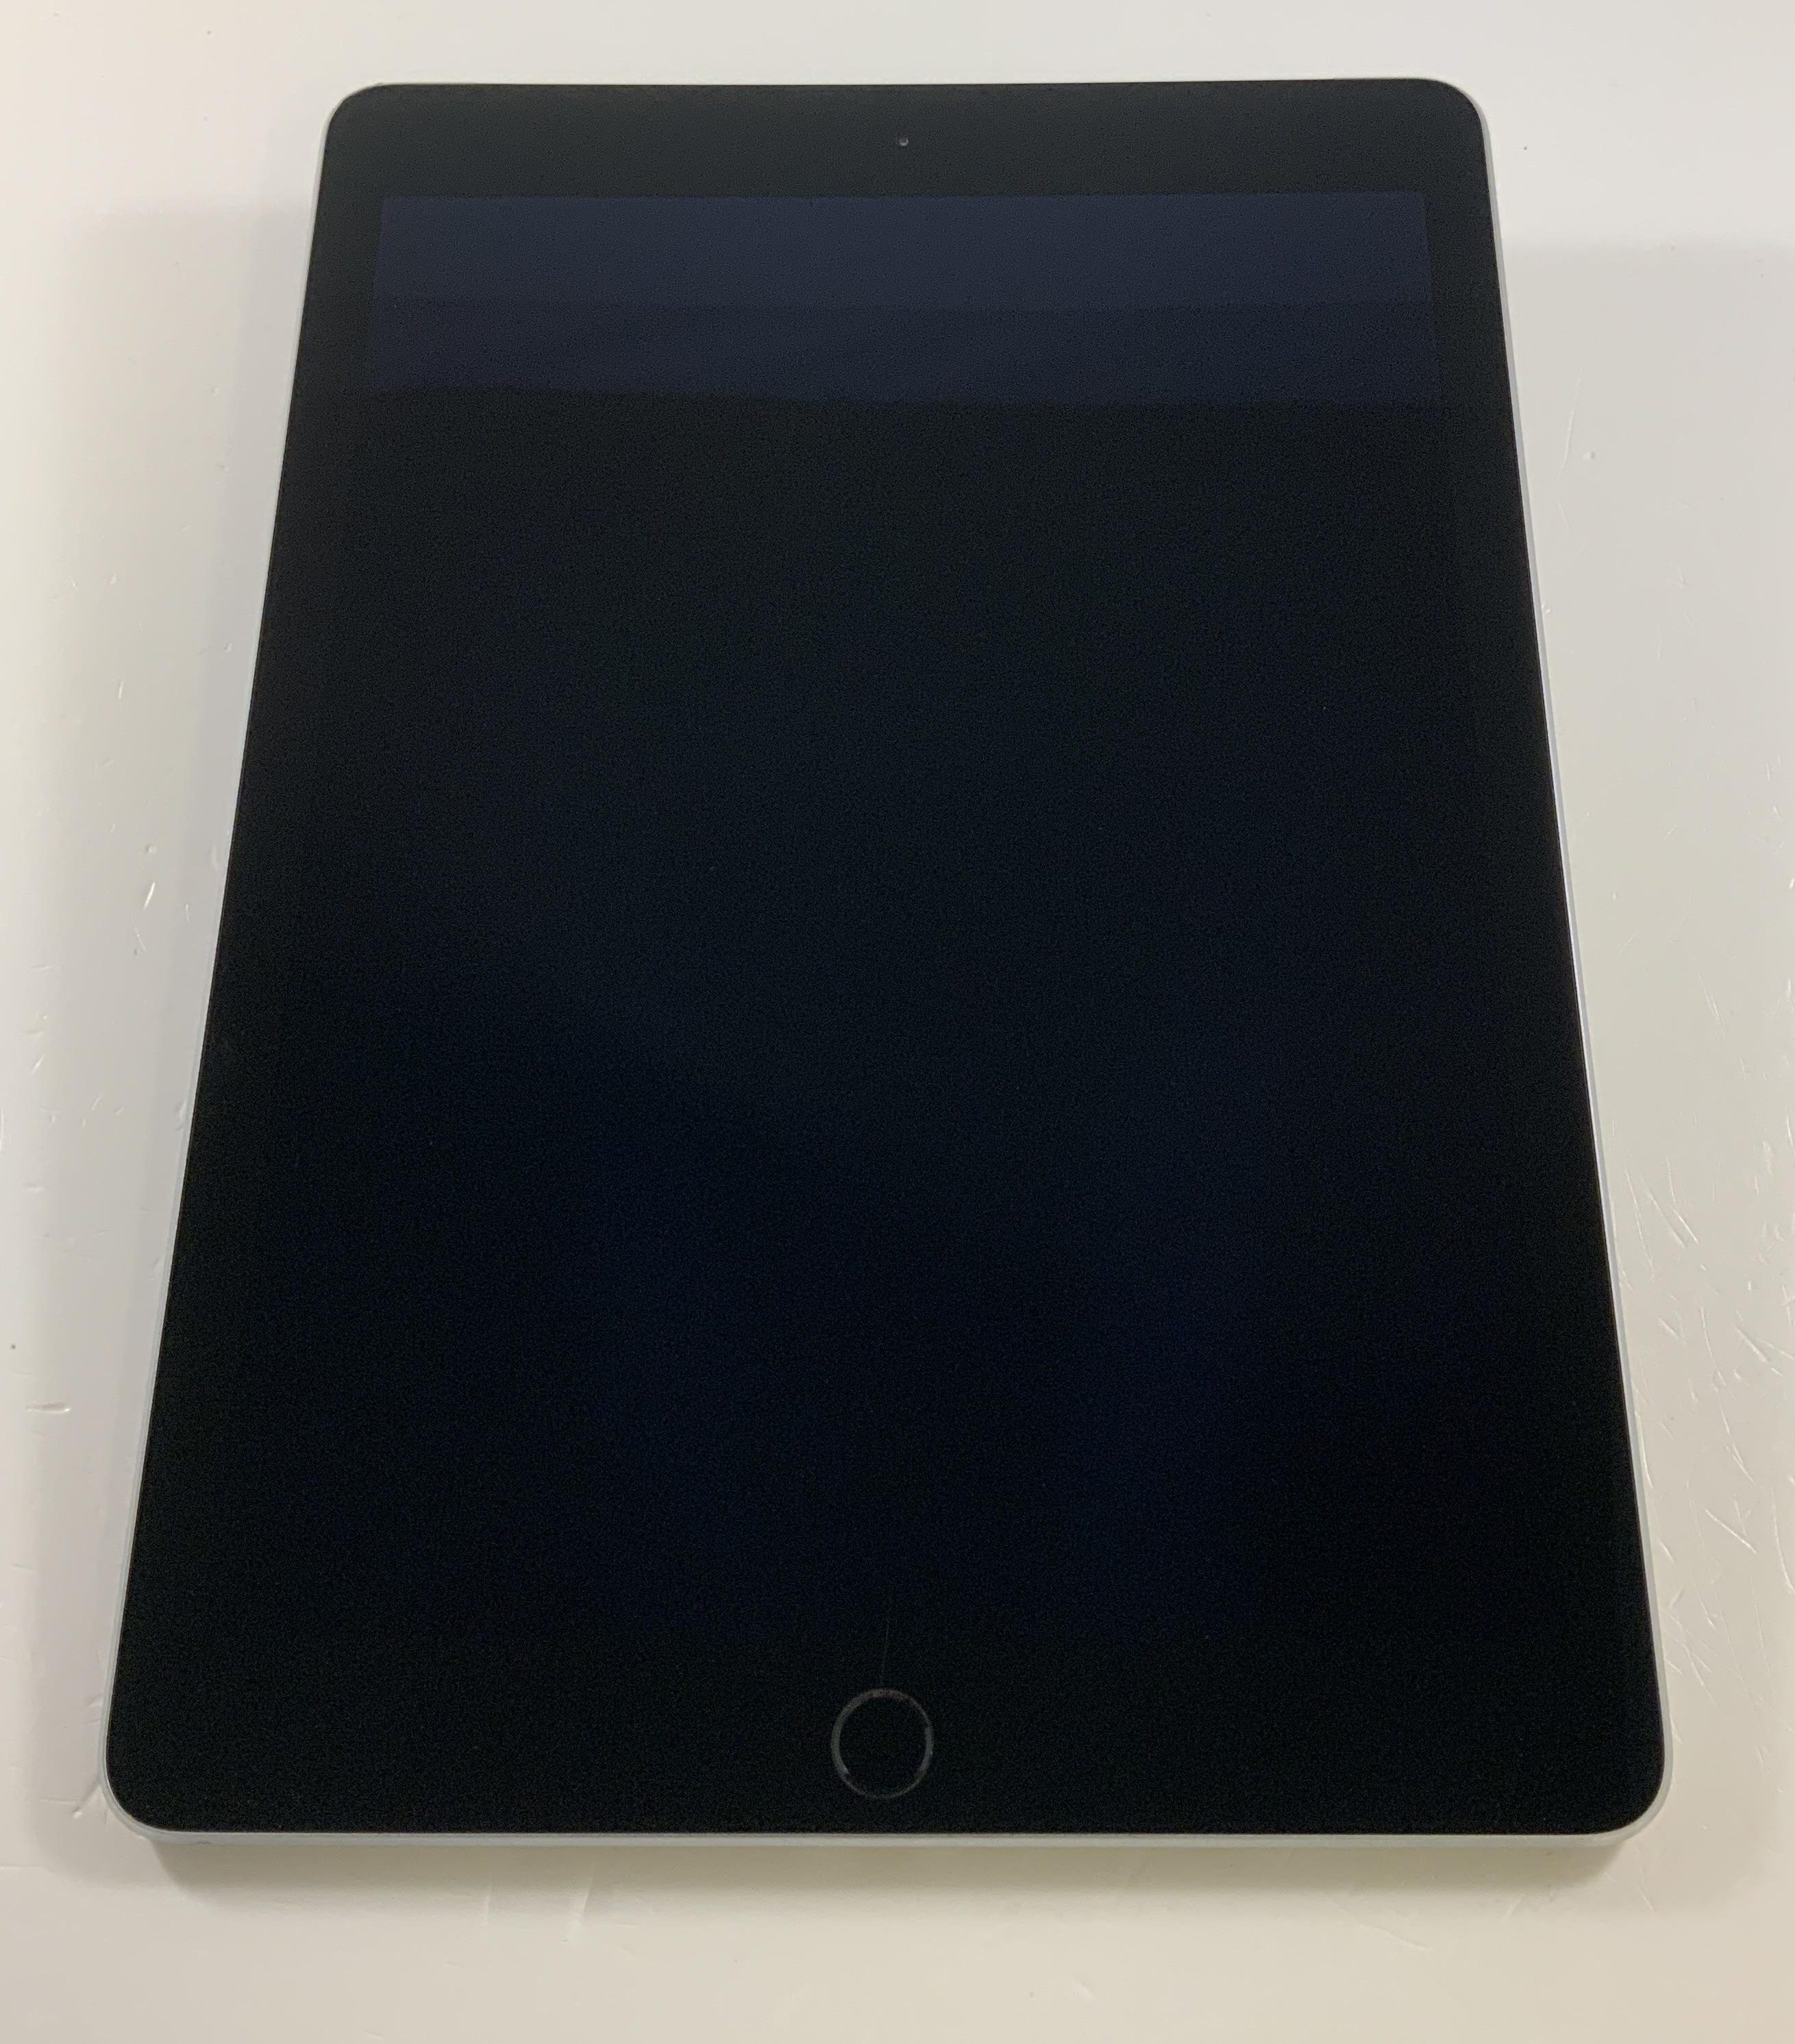 iPad Air 2 Wi-Fi + Cellular 64GB, 64GB, Space Gray, bild 1